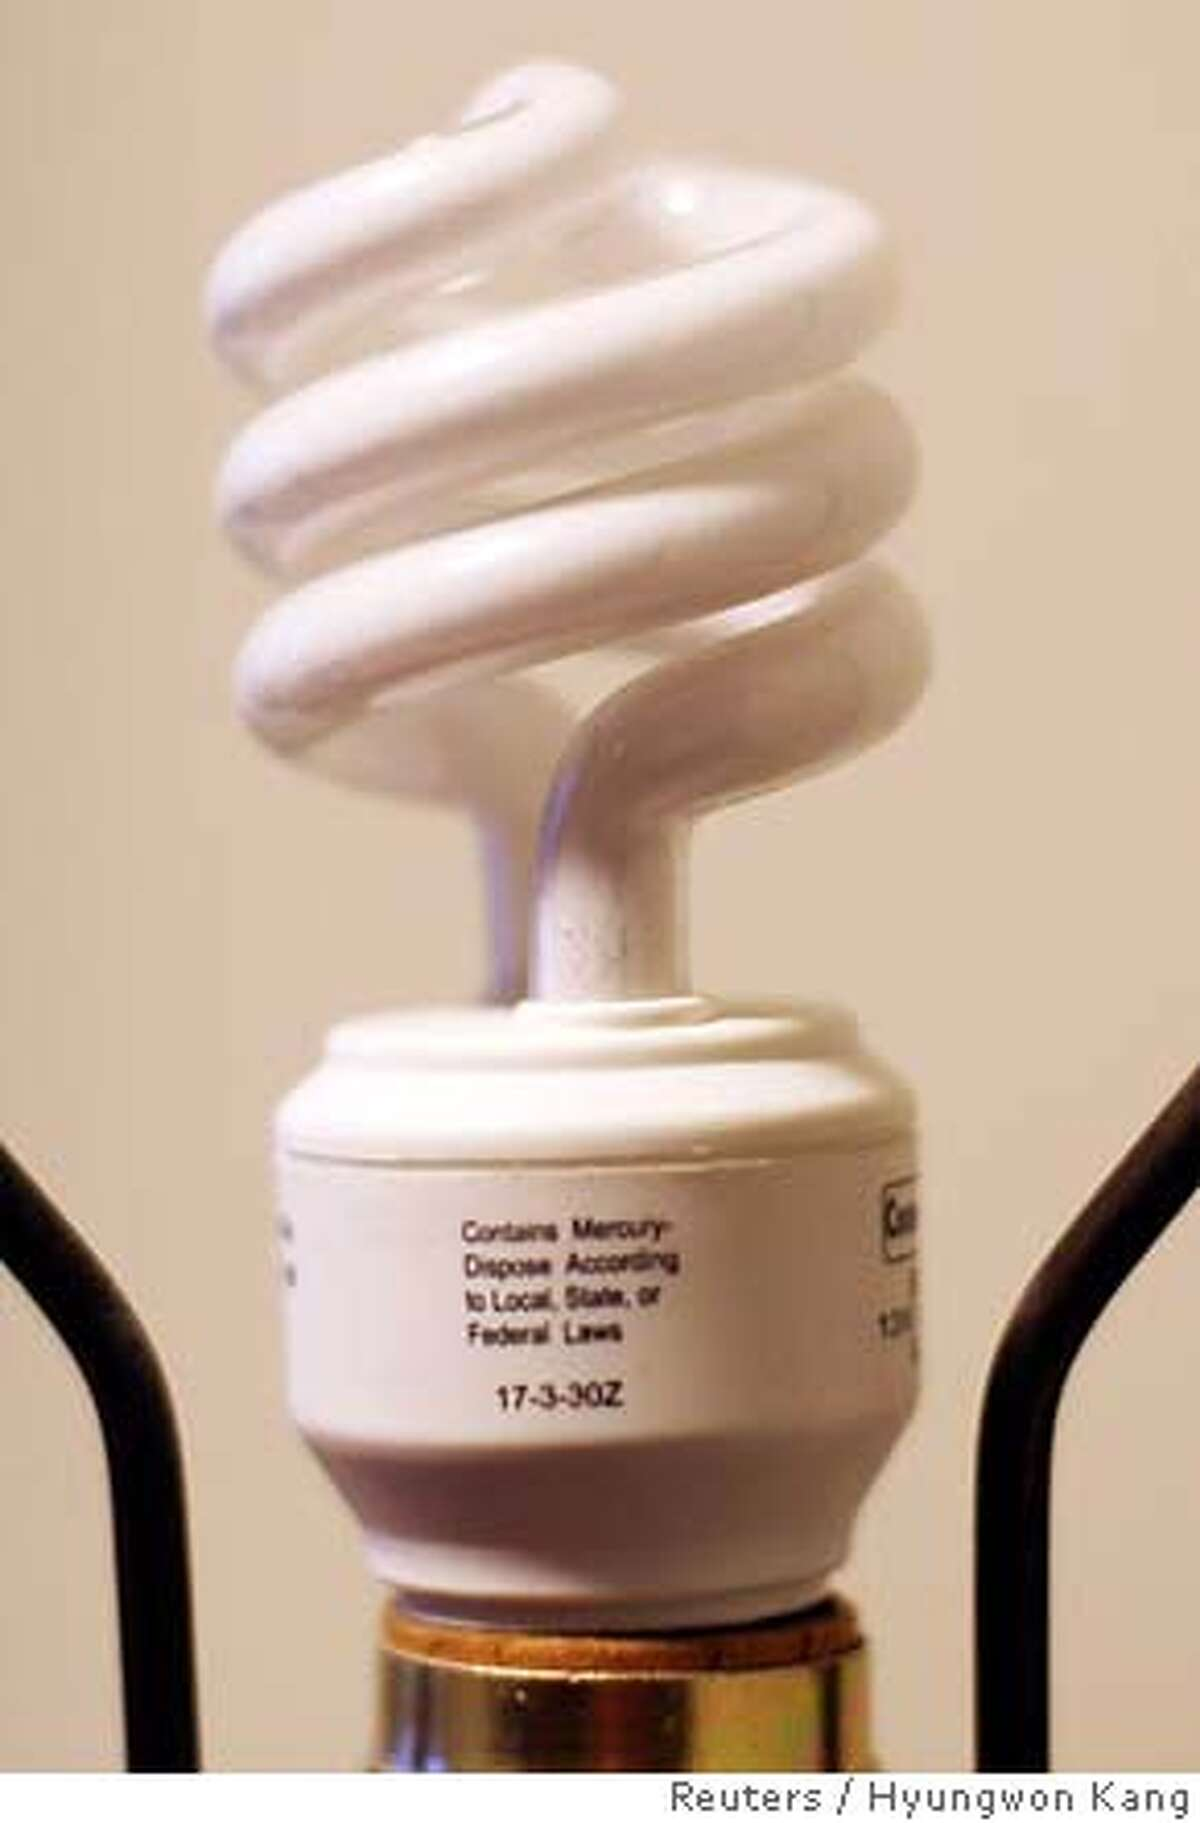 A compact fluorescent light bulb which has mercury warning on it, is pictured in Great Falls March 28, 2007. Mercury is poisonous, but it's also a necessary part of most CFLs, the kind that environmentalists and some governments are pushing as a way to cut energy use. To prevent mercury from getting into landfills, the U.S. Environment Protection Agency, CFL makers and various organizations advocate recycling. To match feature ENVIRONMENT-LIGHTBULBS/ REUTERS/Hyungwon Kang (UNITED STATES) 0